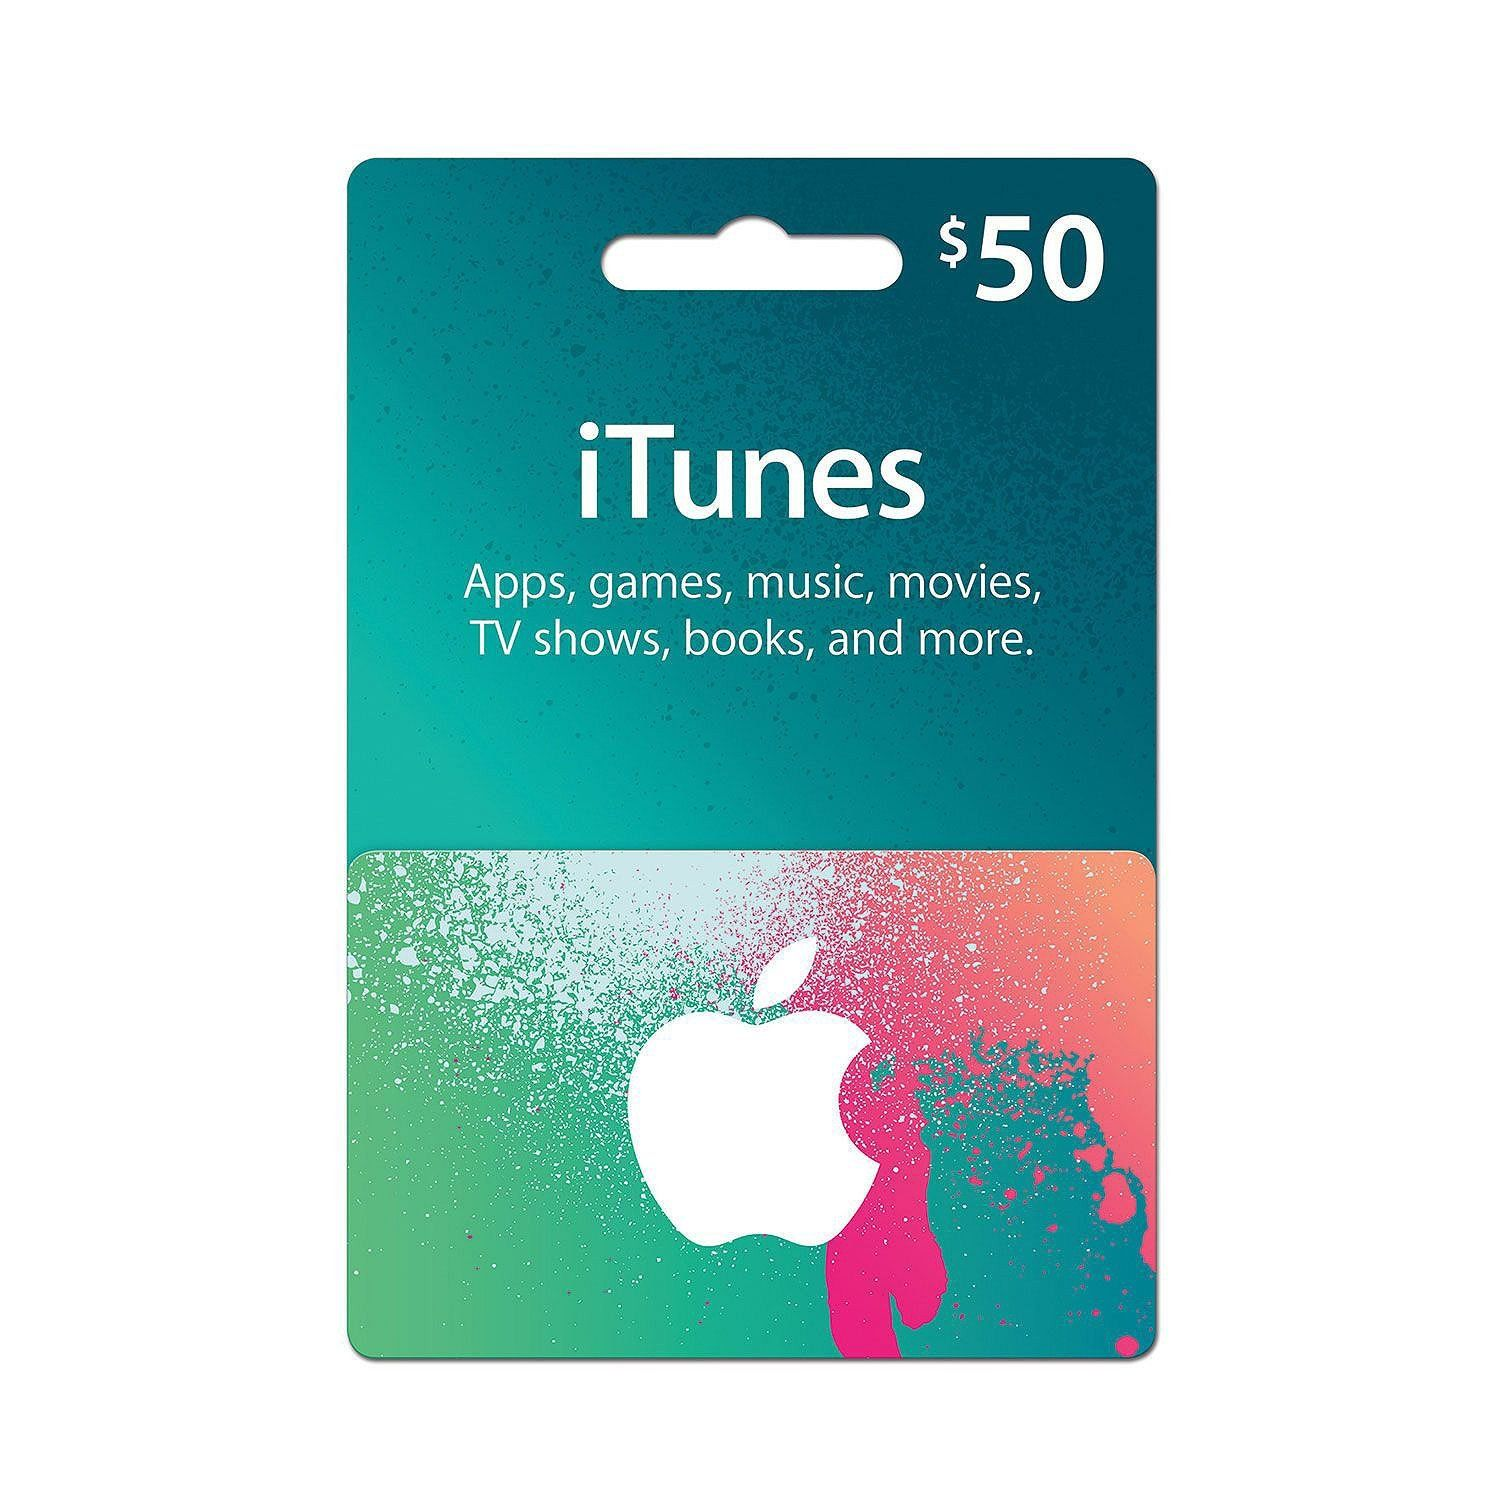 iTunes 50 Prepaid Gift Card (Physical Card) in 2019